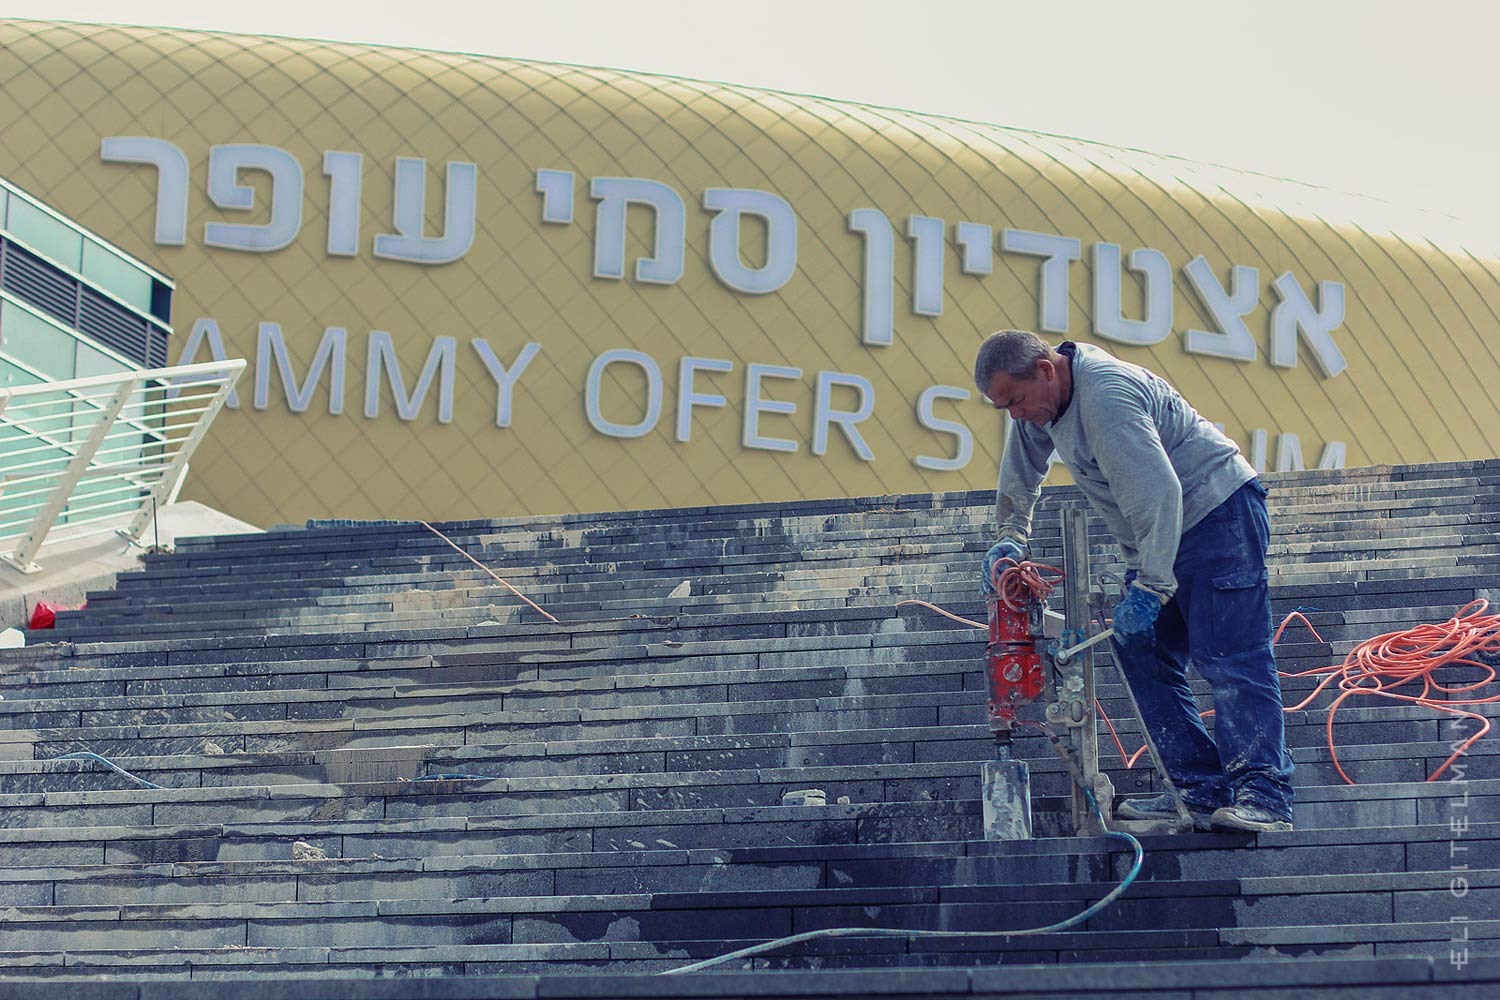 A man drilling through concrete stairs